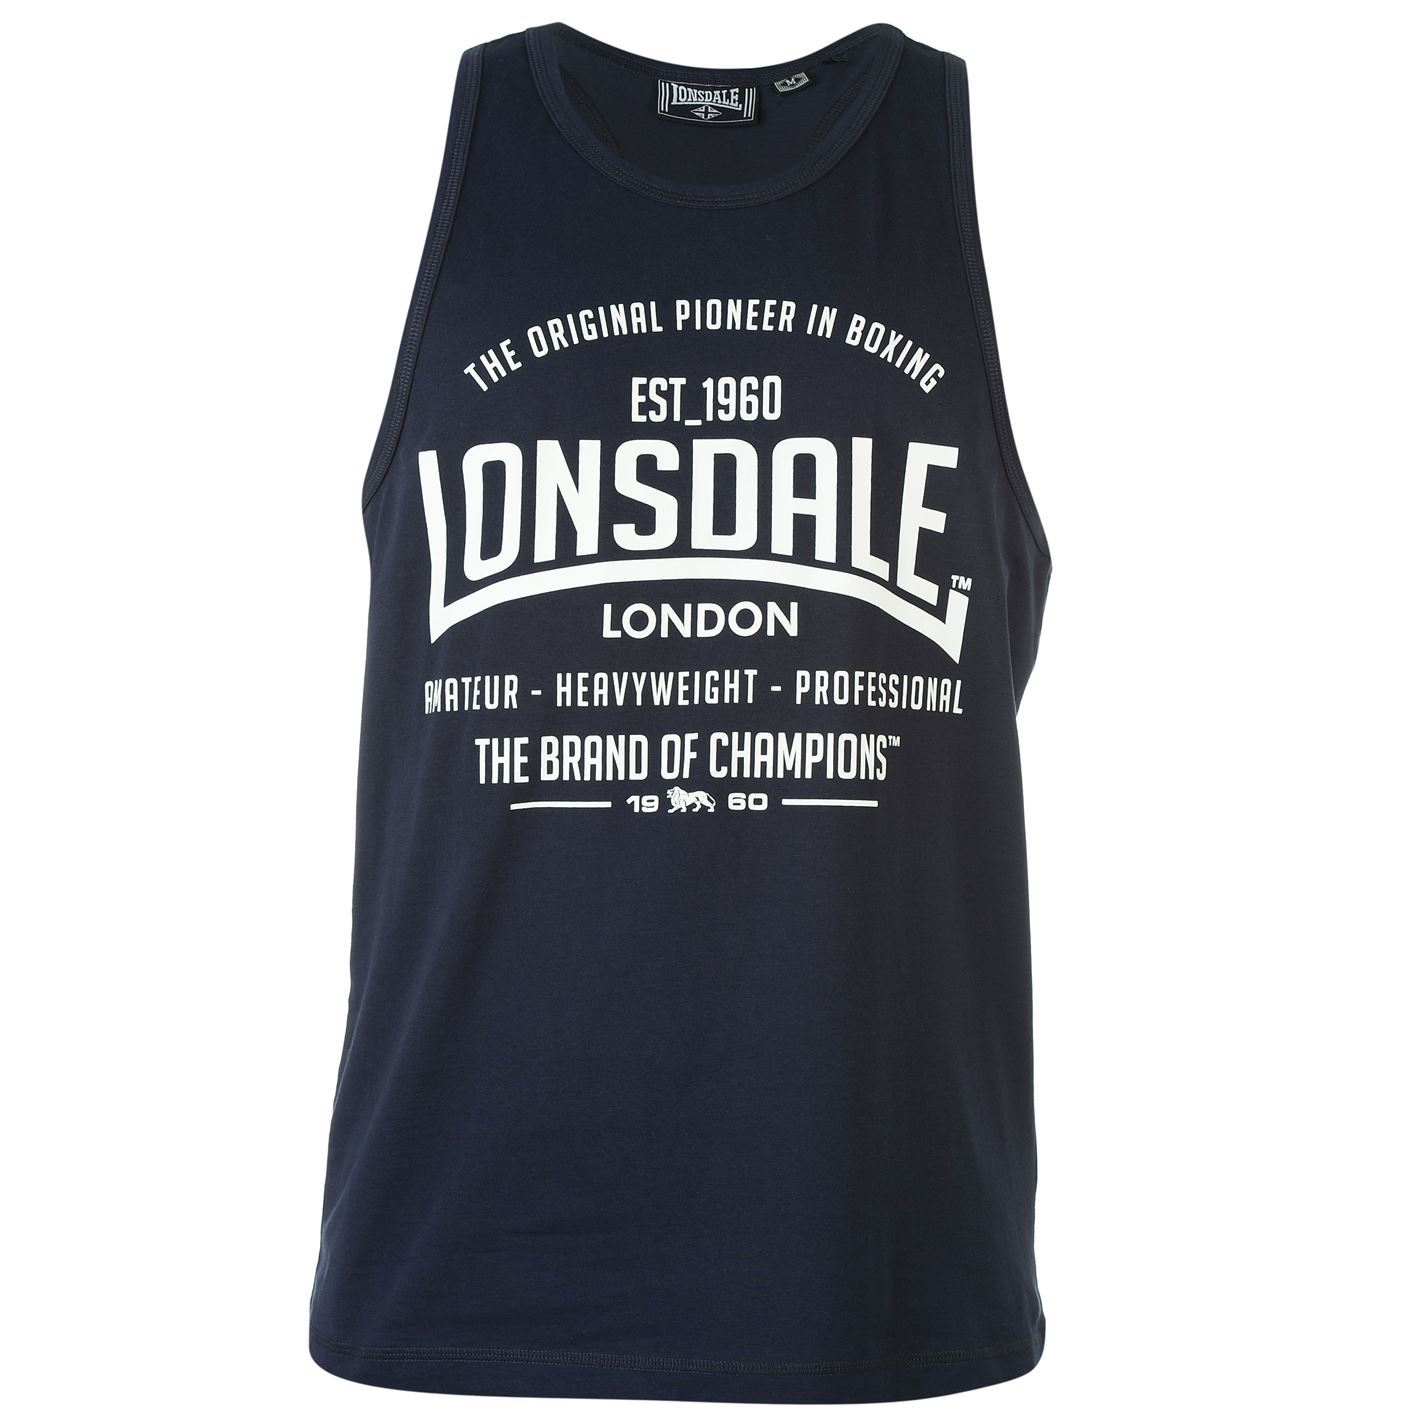 Lonsdale-Boxing-Vests-Top-Sleeveless-Tank-Scooped-Neck-Sports-Mens-Gents